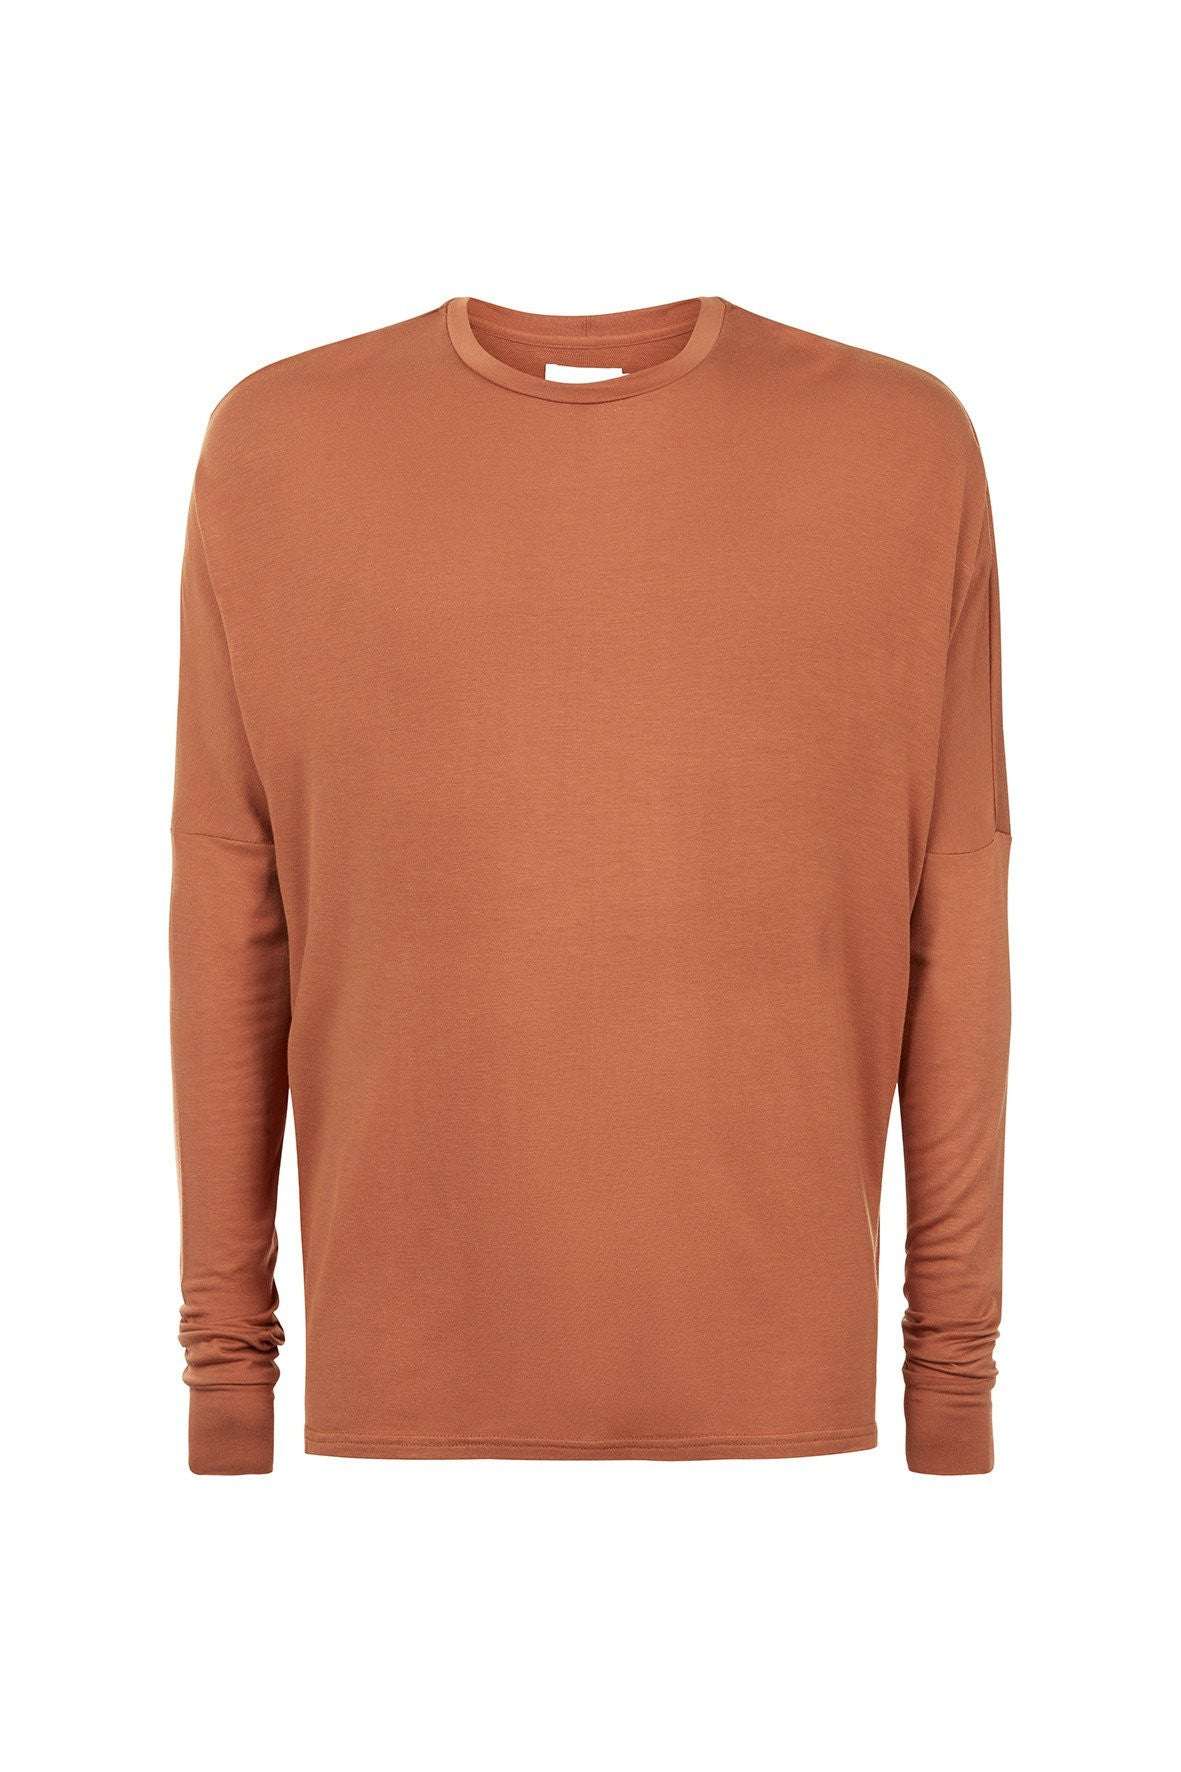 MINERAL DROPPED LONG SLEEVE TEE AMBER